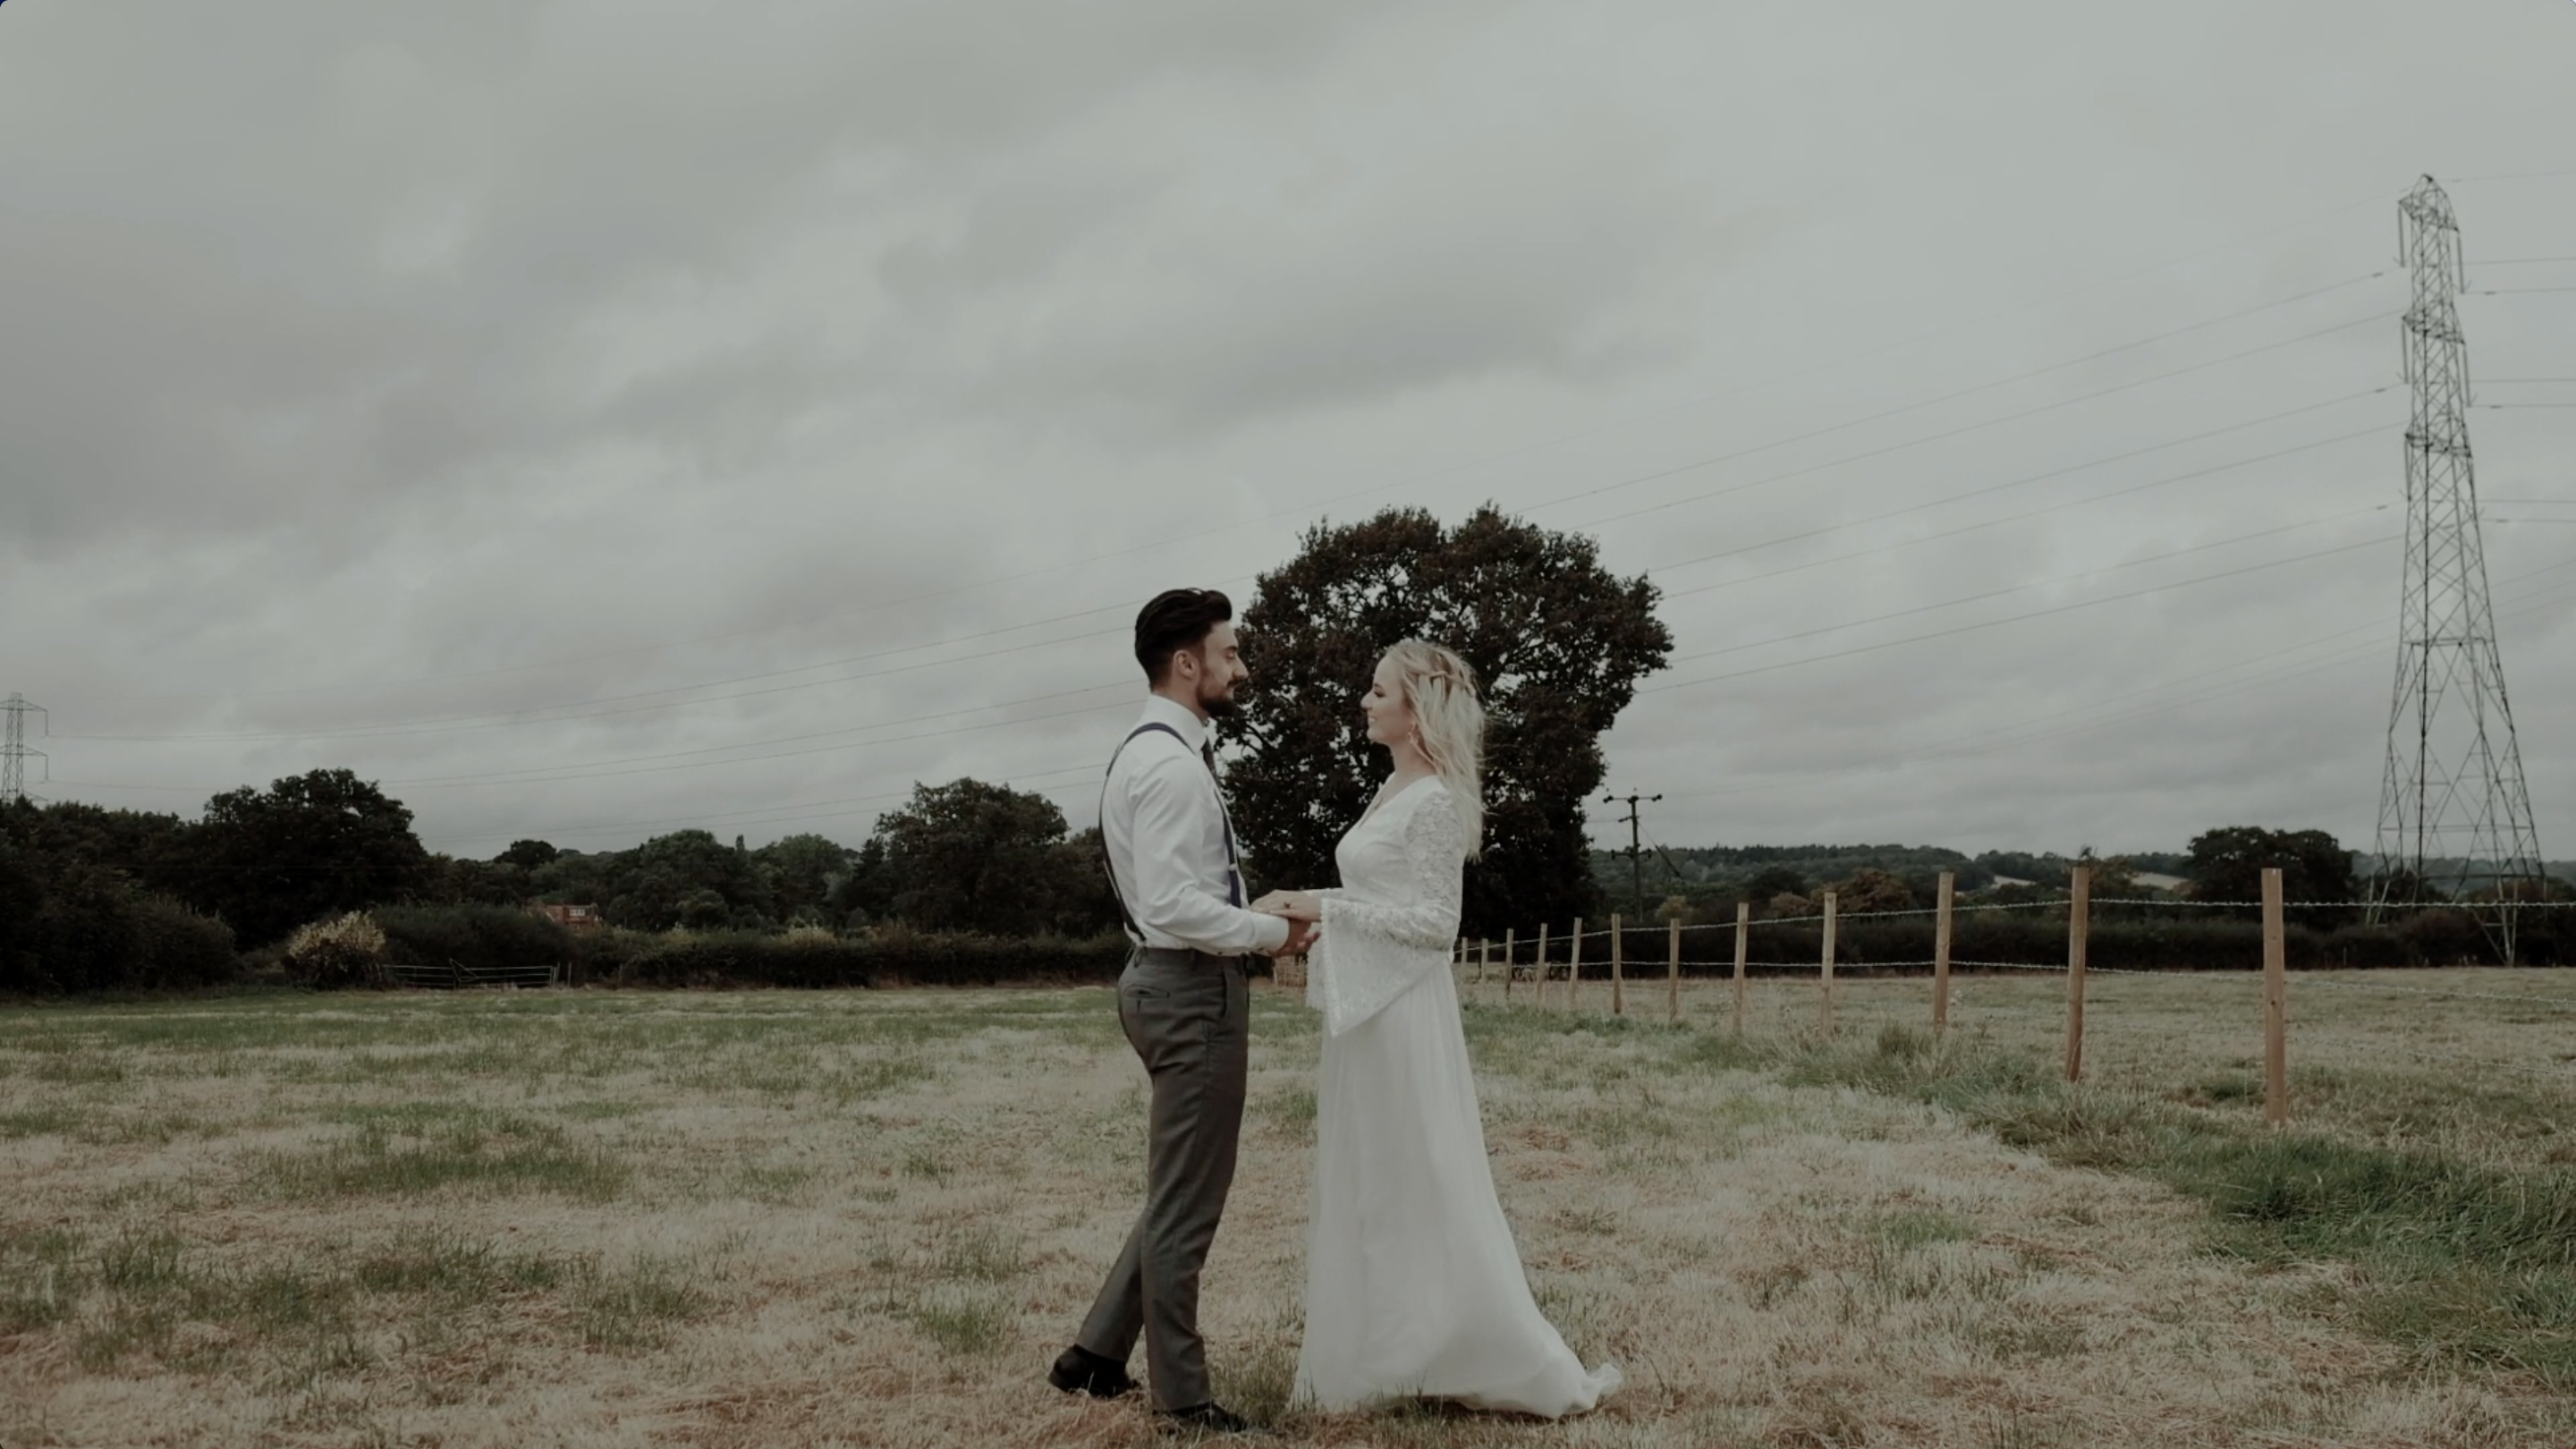 Anna + Jack | Surrey, United Kingdom | Bysshe Court Farm